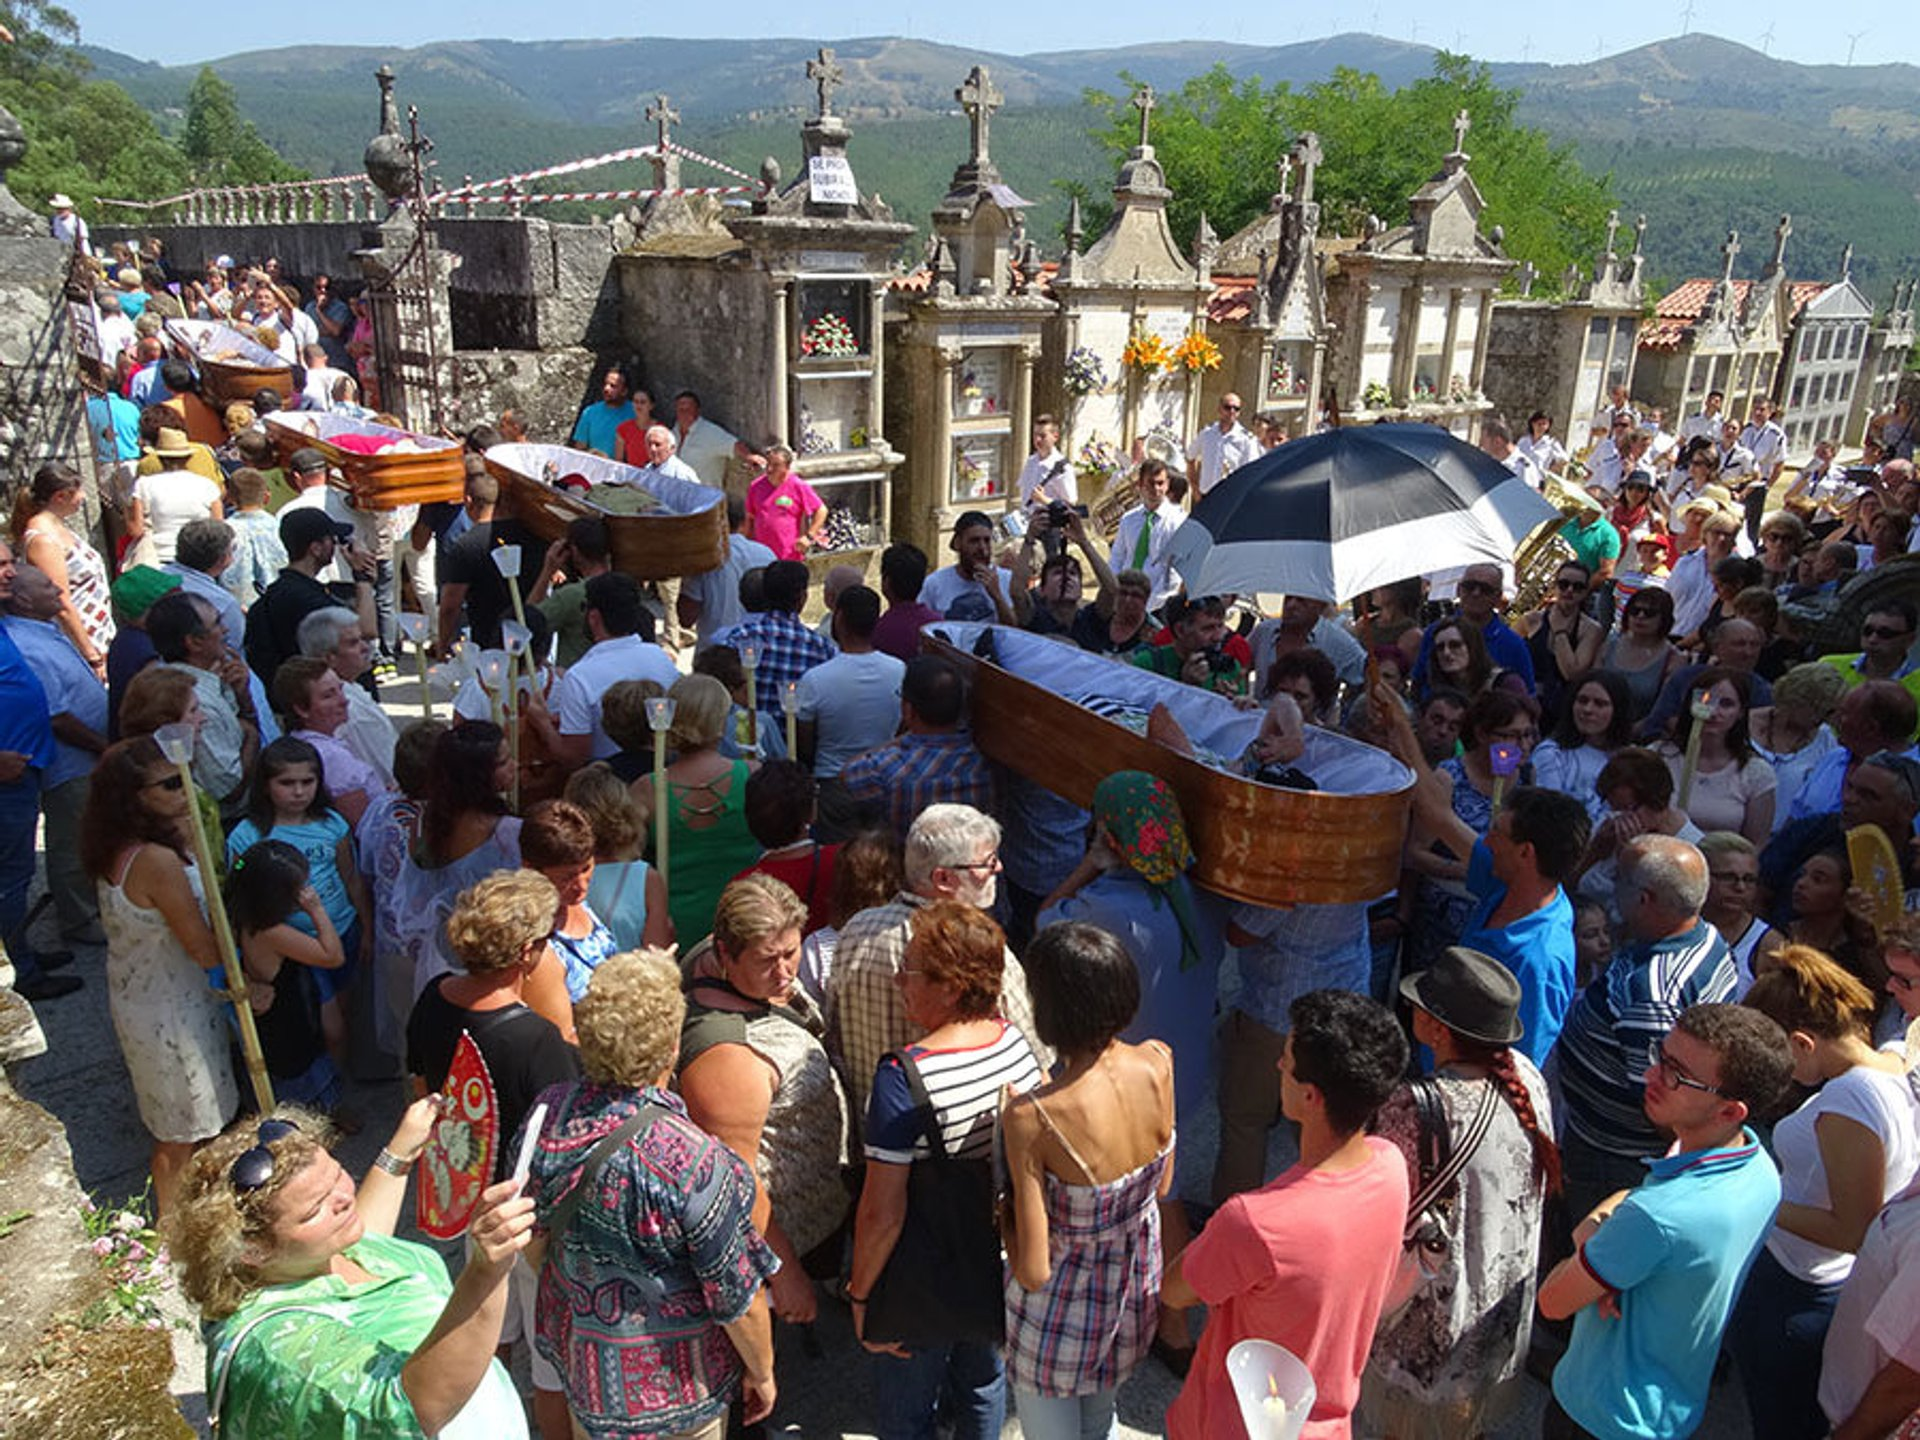 Best time for Festival of Near-Death Experiences in Spain 2020